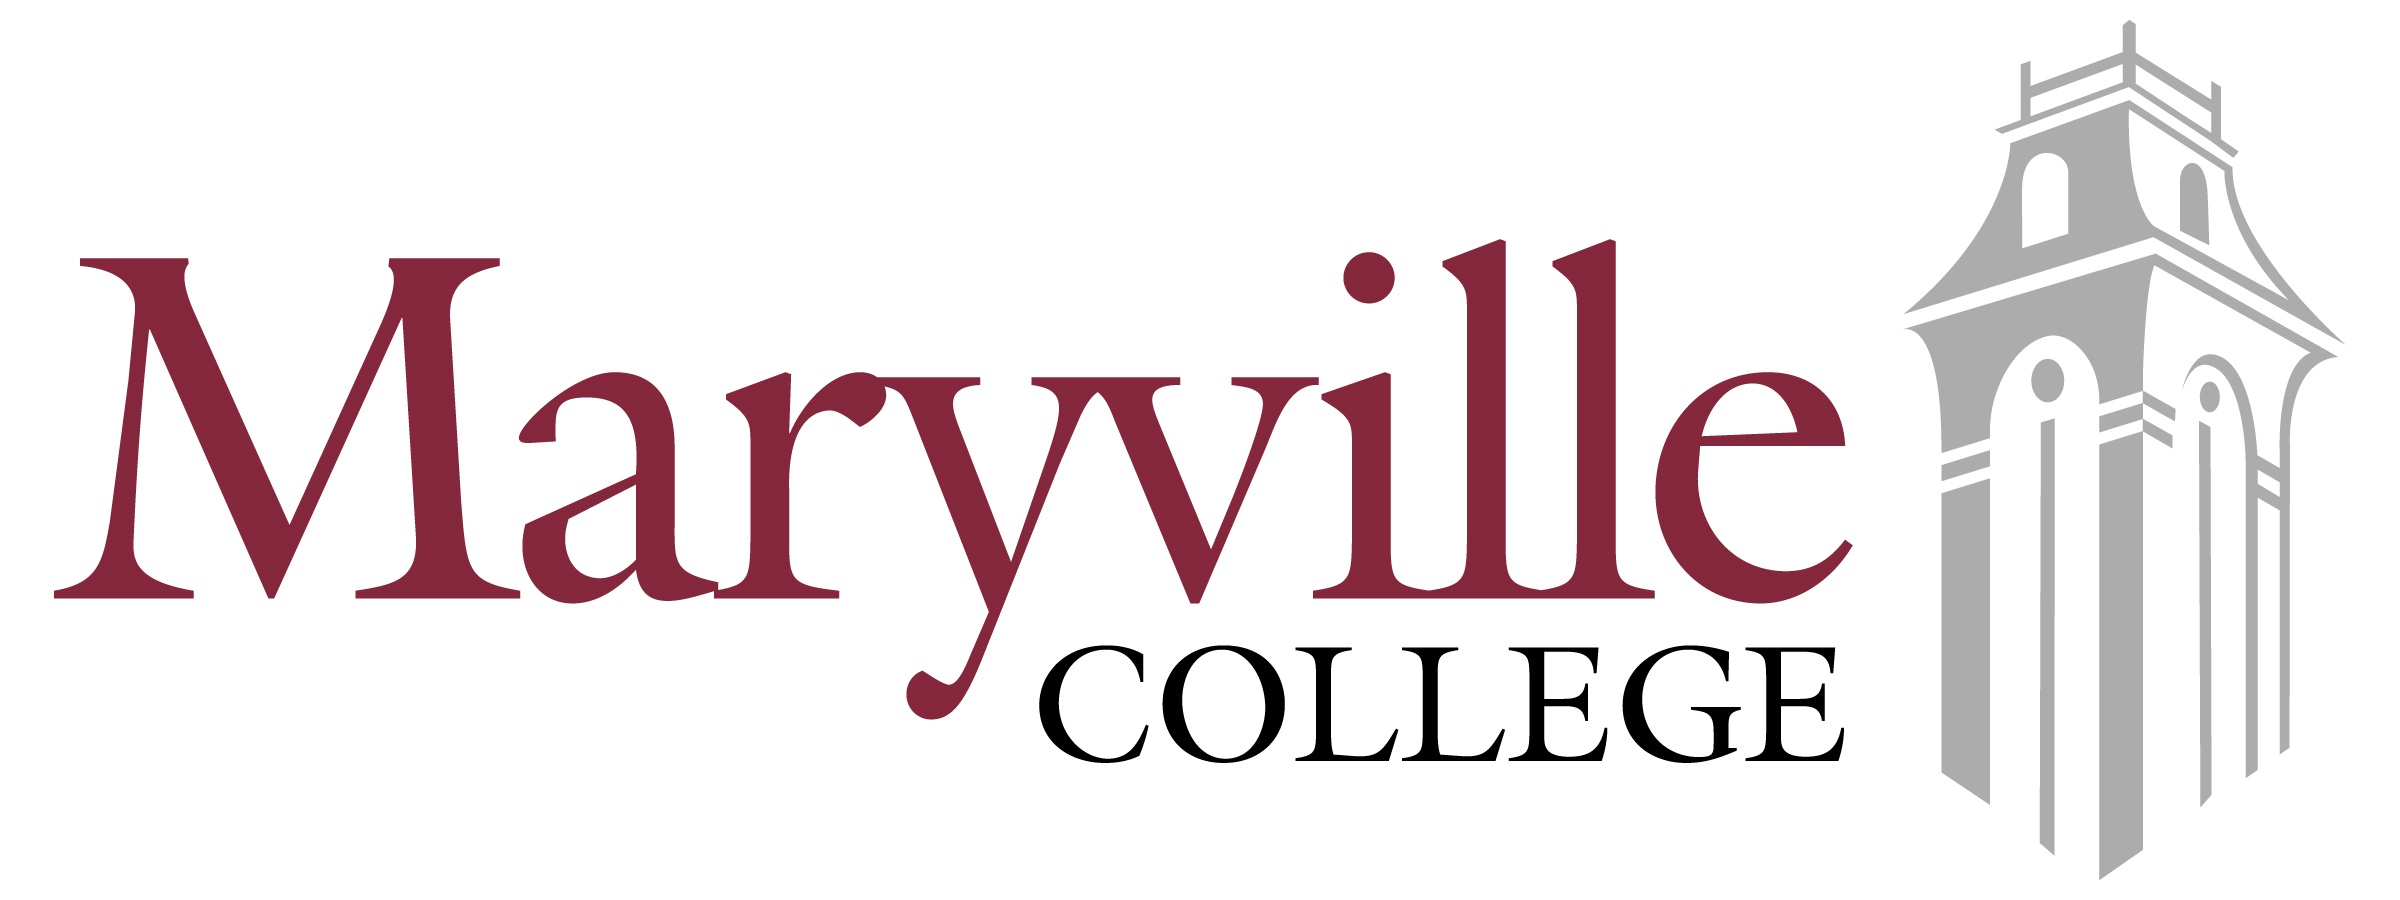 Maryville college logo